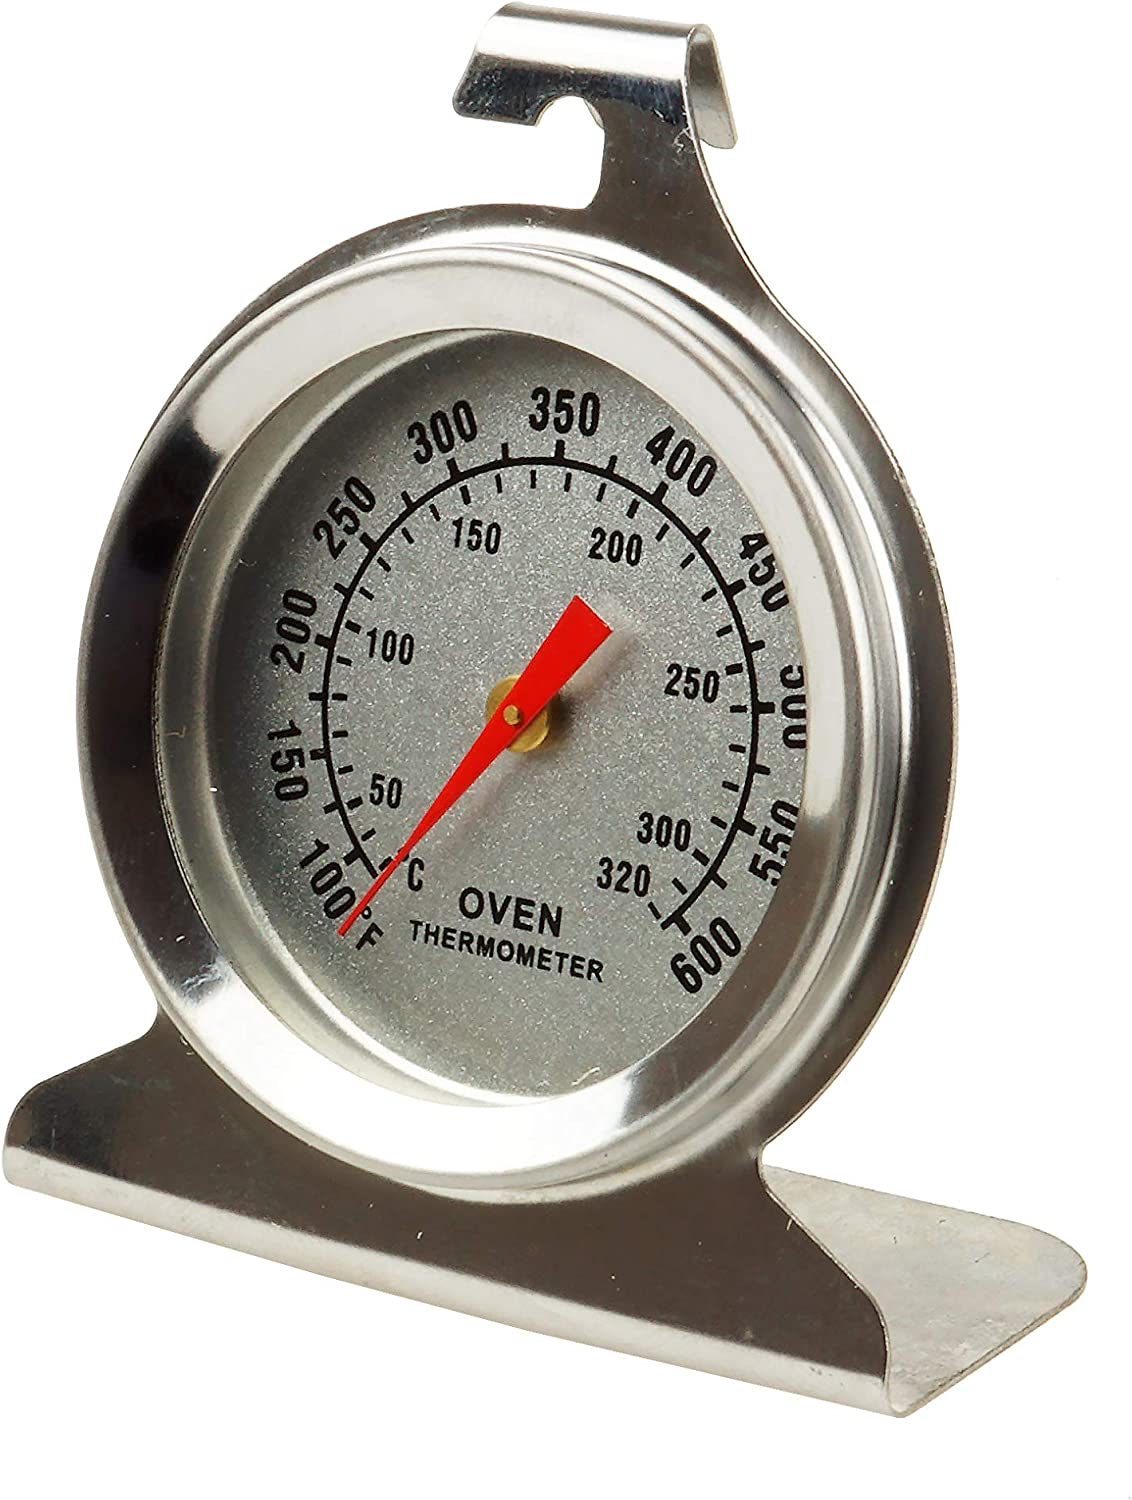 RenGard Oven/Grill/Smoker Thermometer Stainless Steel Instant Read Monitoring (Stainless Steel)